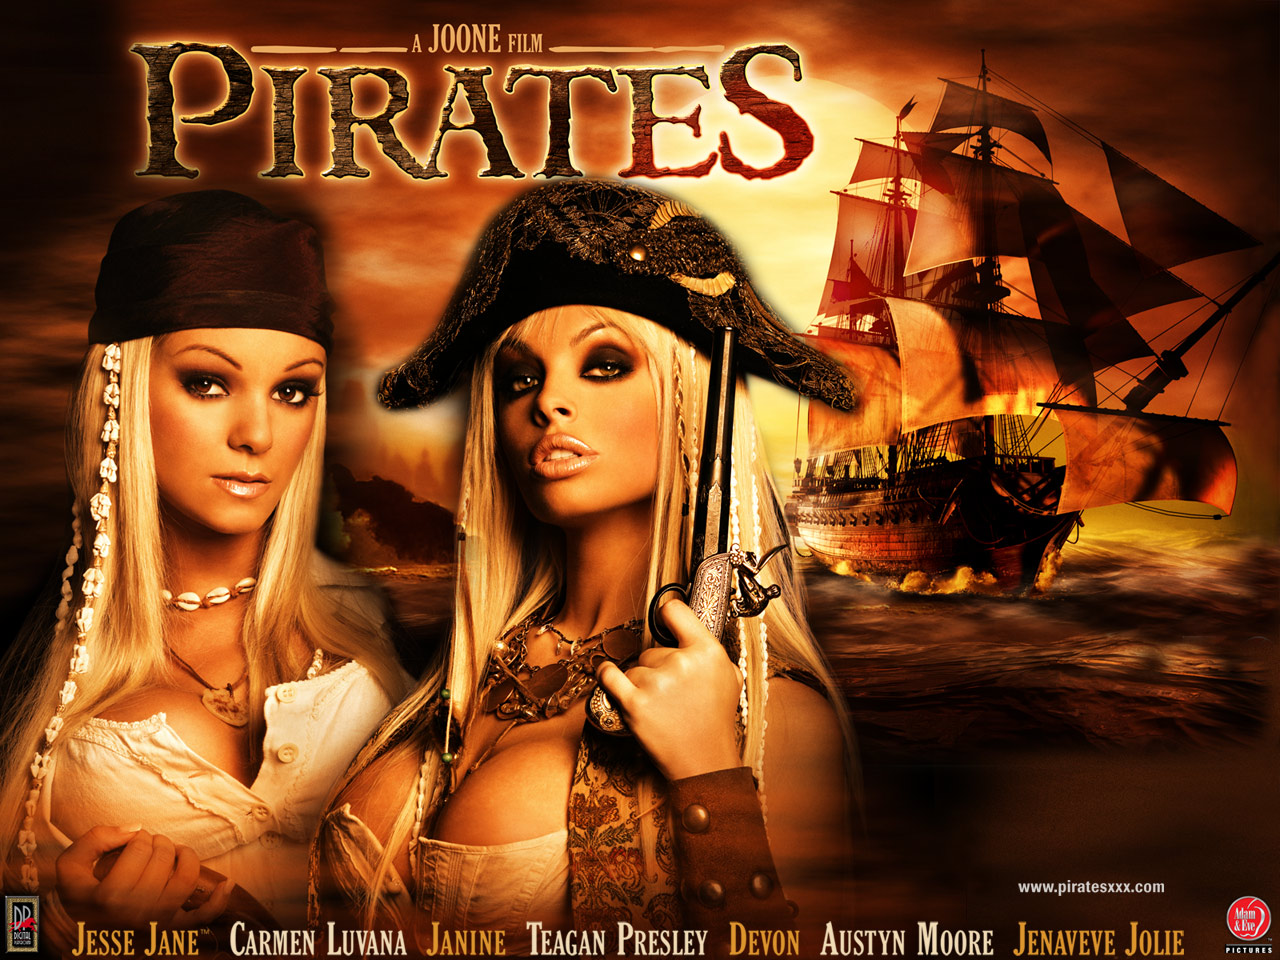 Pirates of the caribbean free xxx erotic images